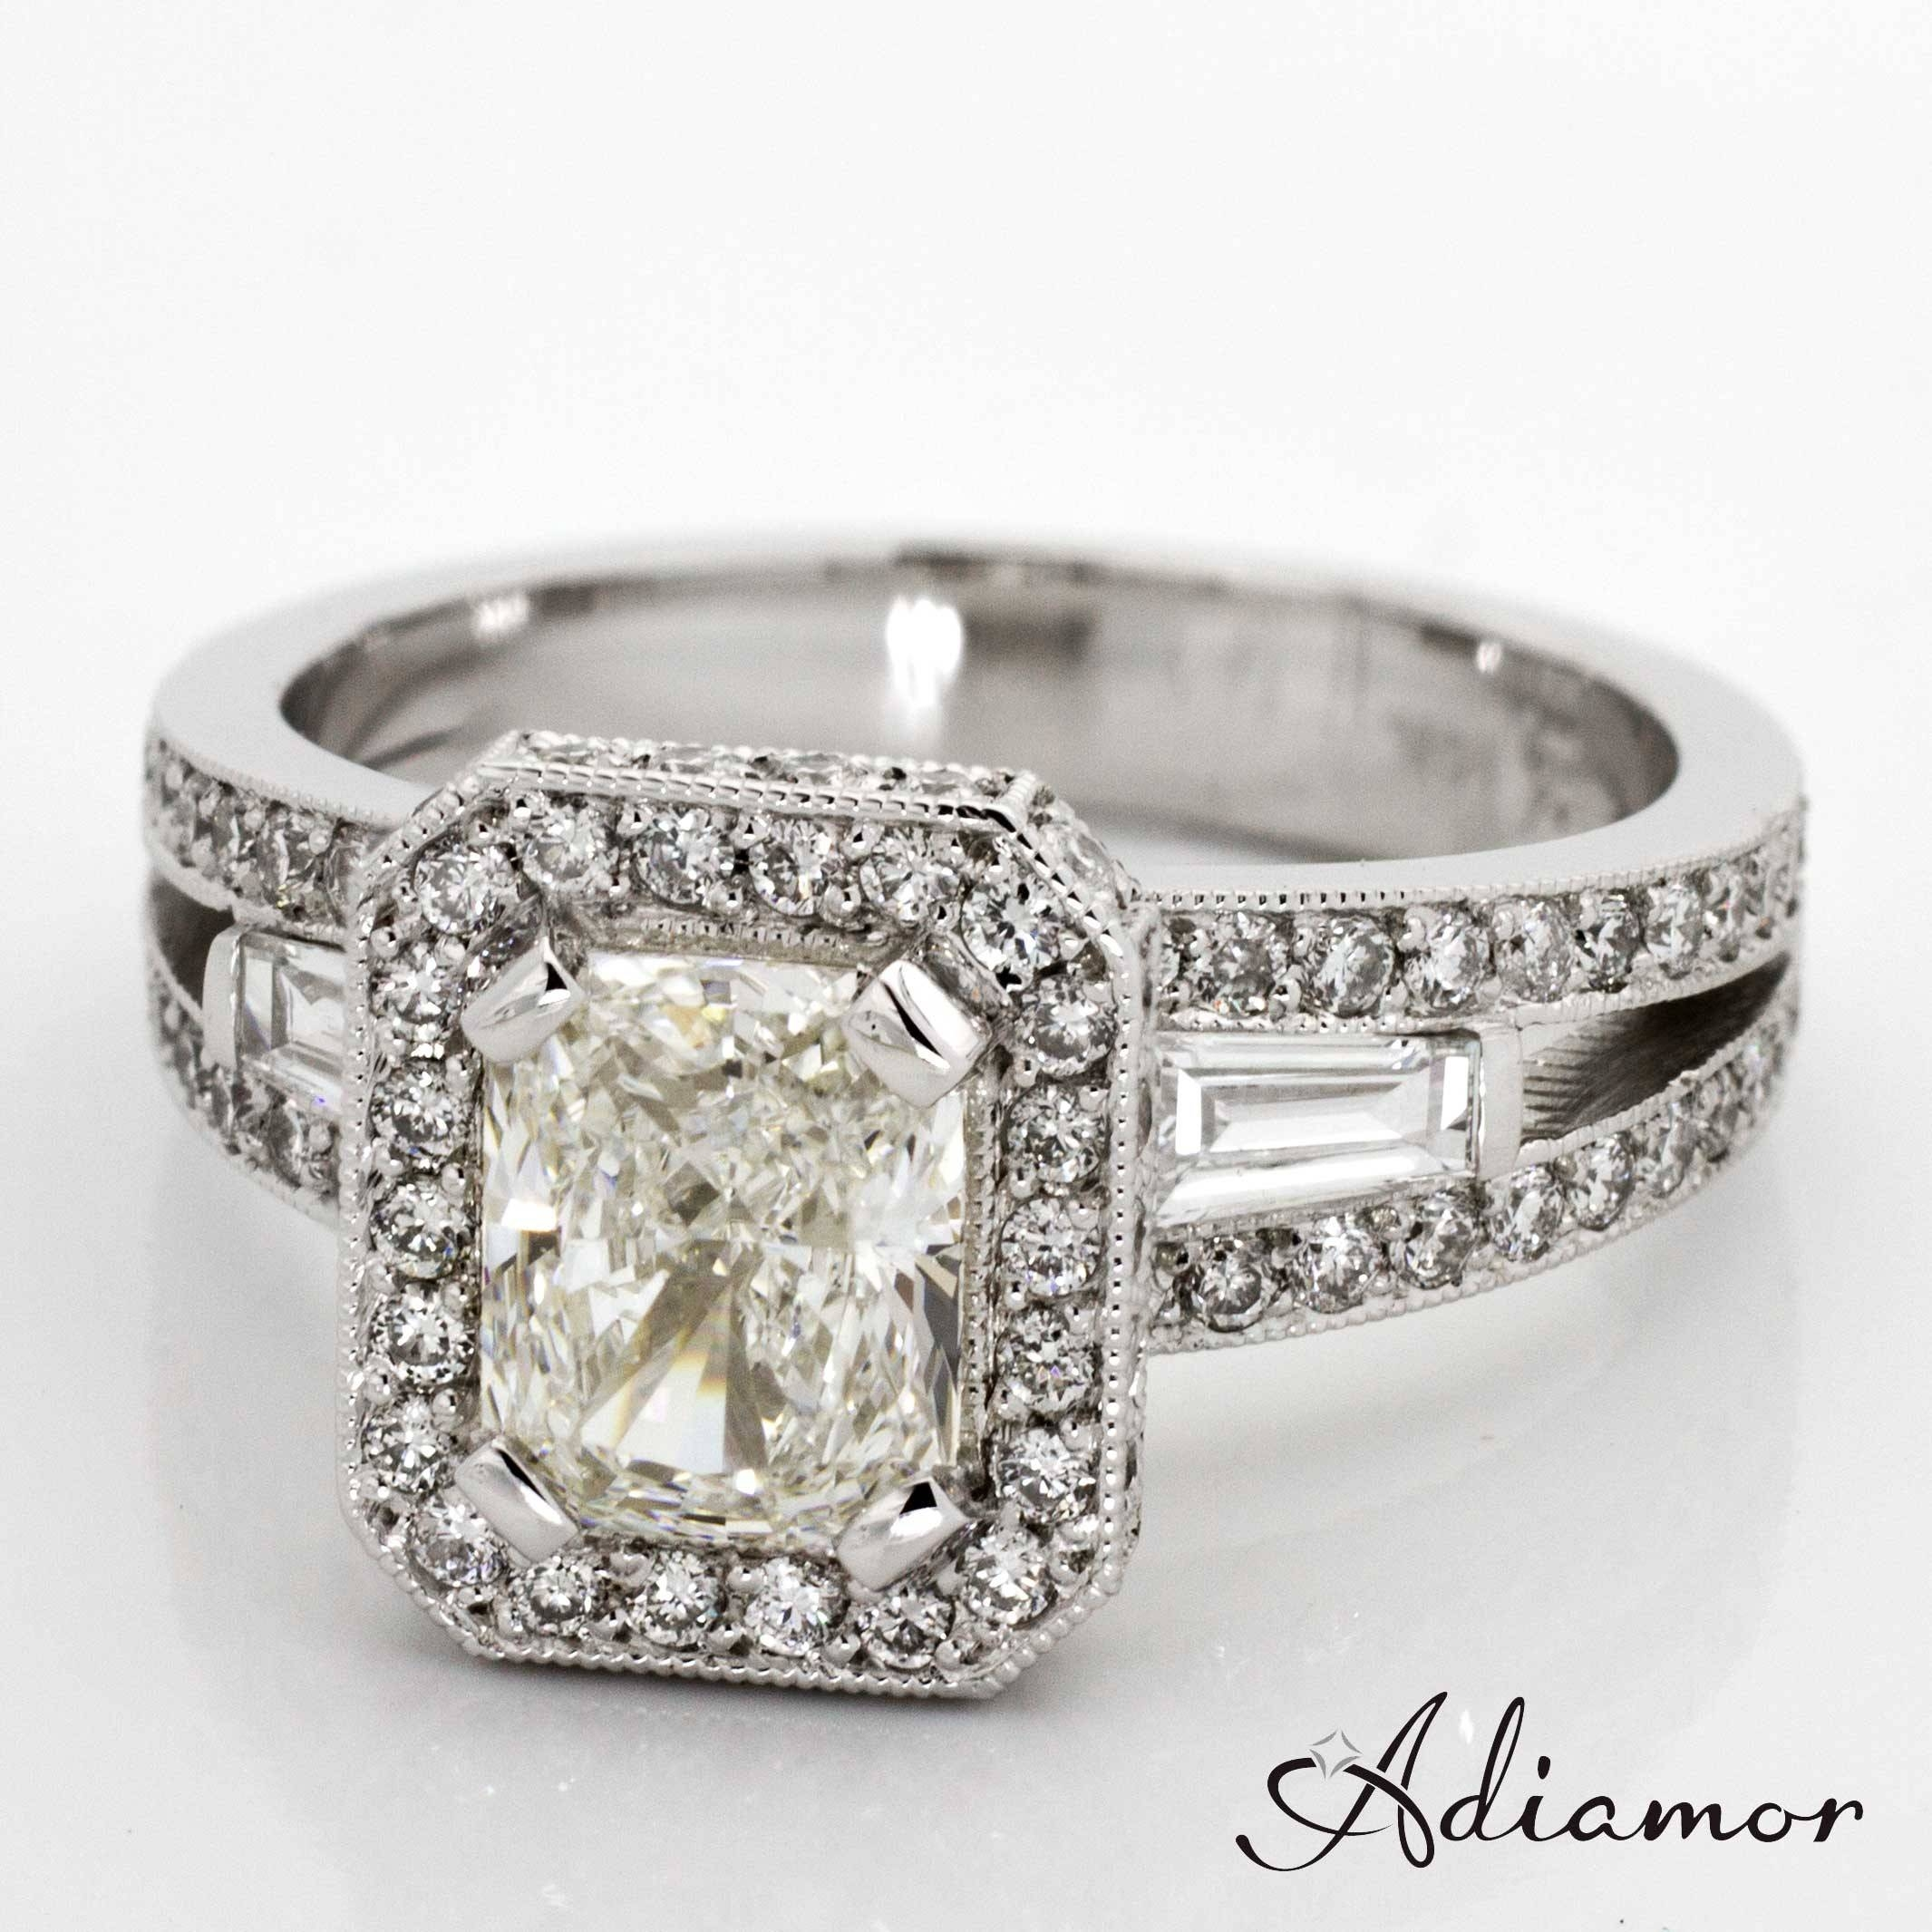 Masculine Wedding Rings Best Of Wedding Ring Archives Adiamor Blog Within Masculine Wedding Rings (View 9 of 15)